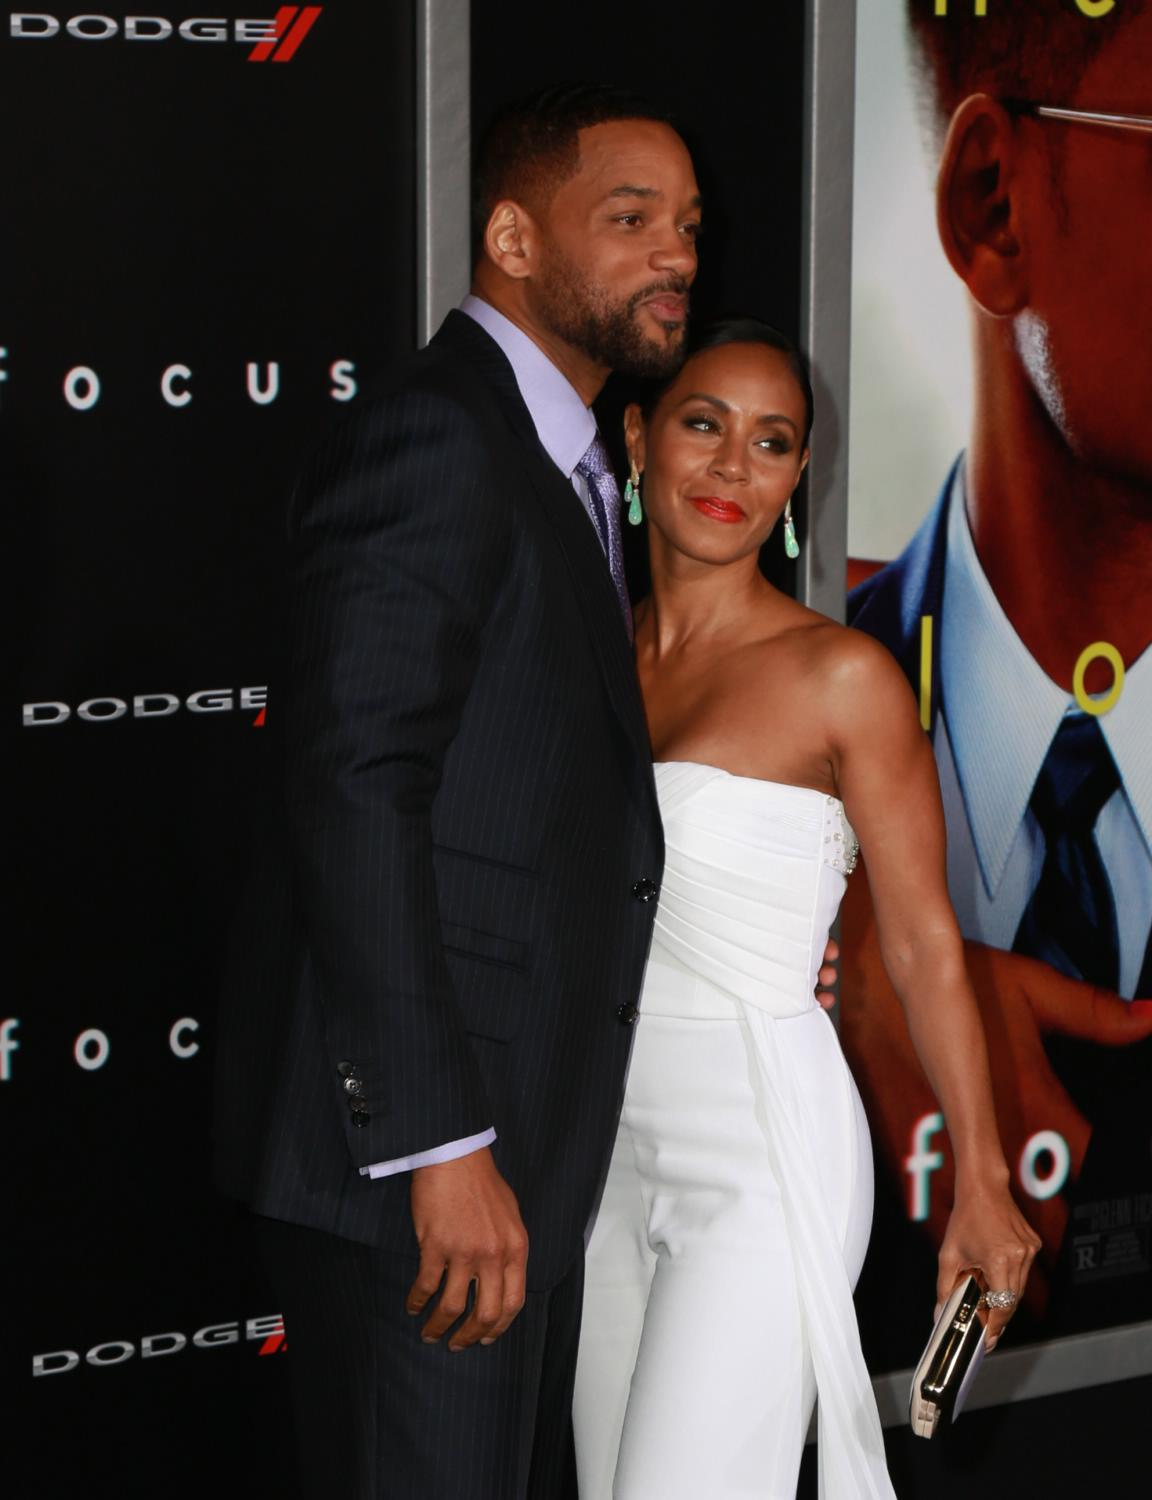 Will Smith and Jada Pinkett Smith Gets Cozy at Focus Premiere-1